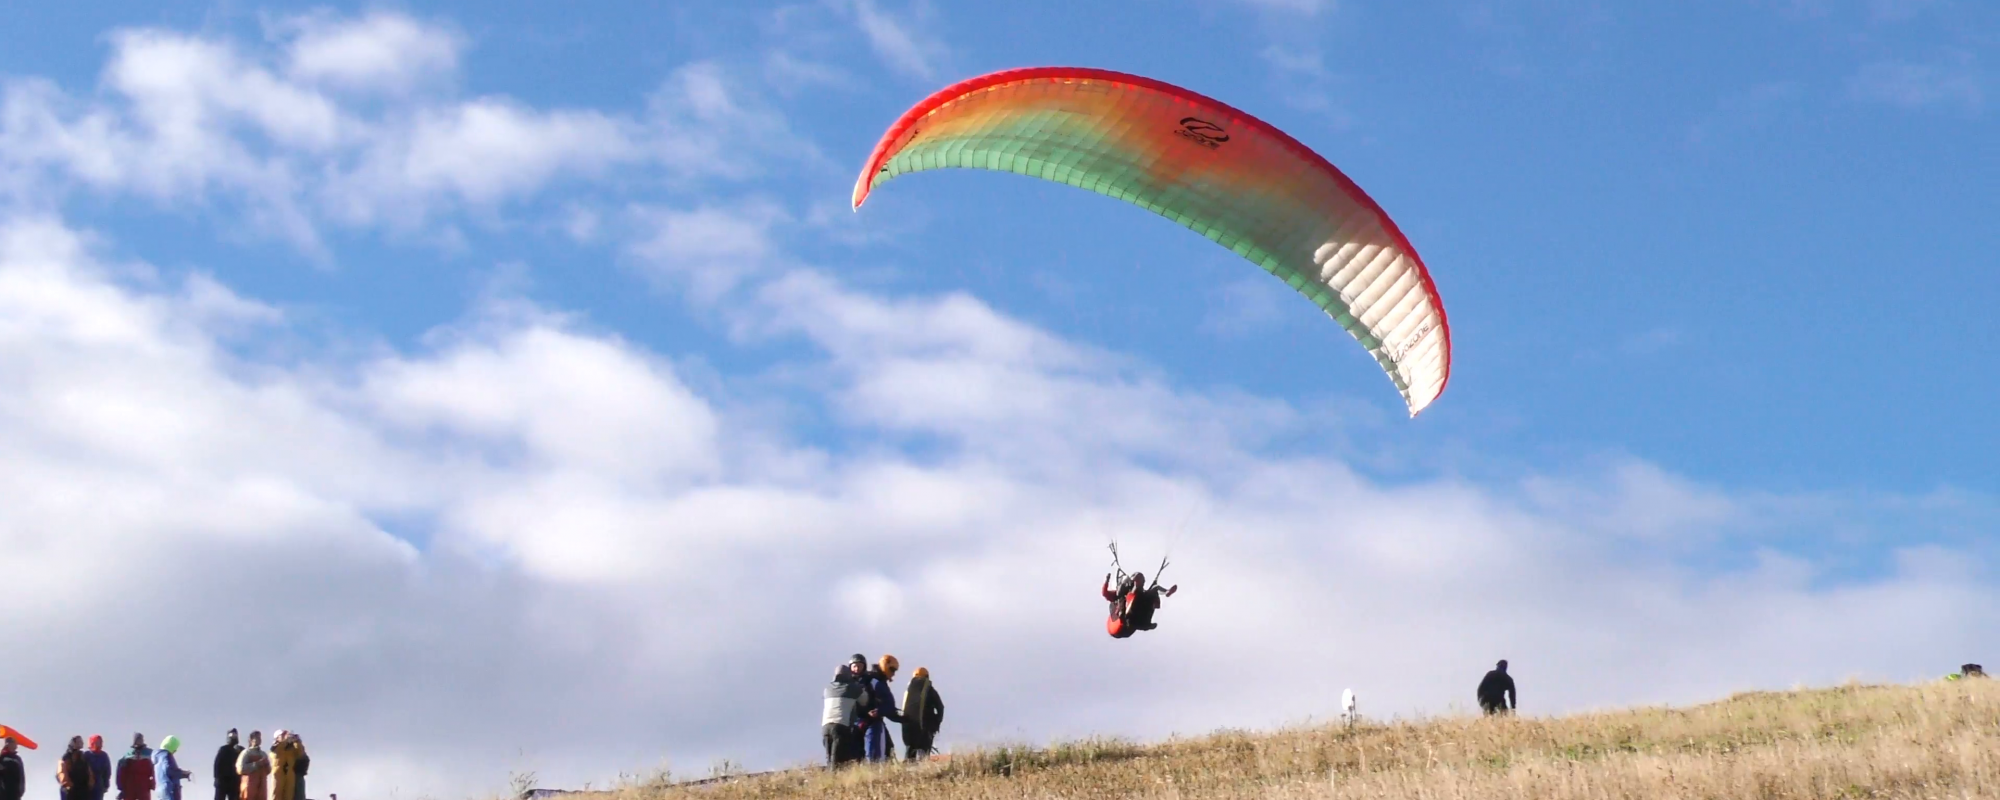 paragliding-tour-in-nepal